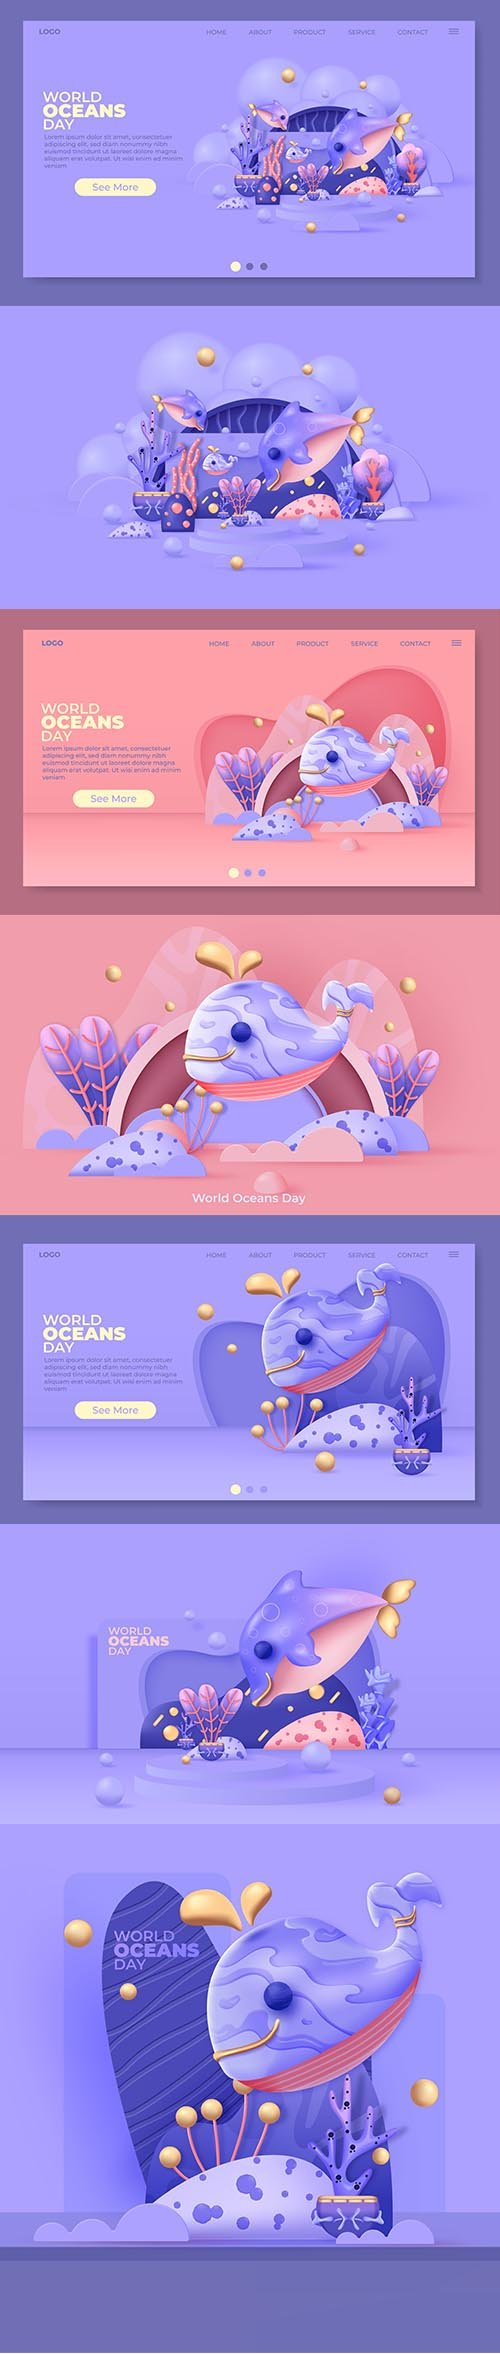 World oceans day illustration for landing page